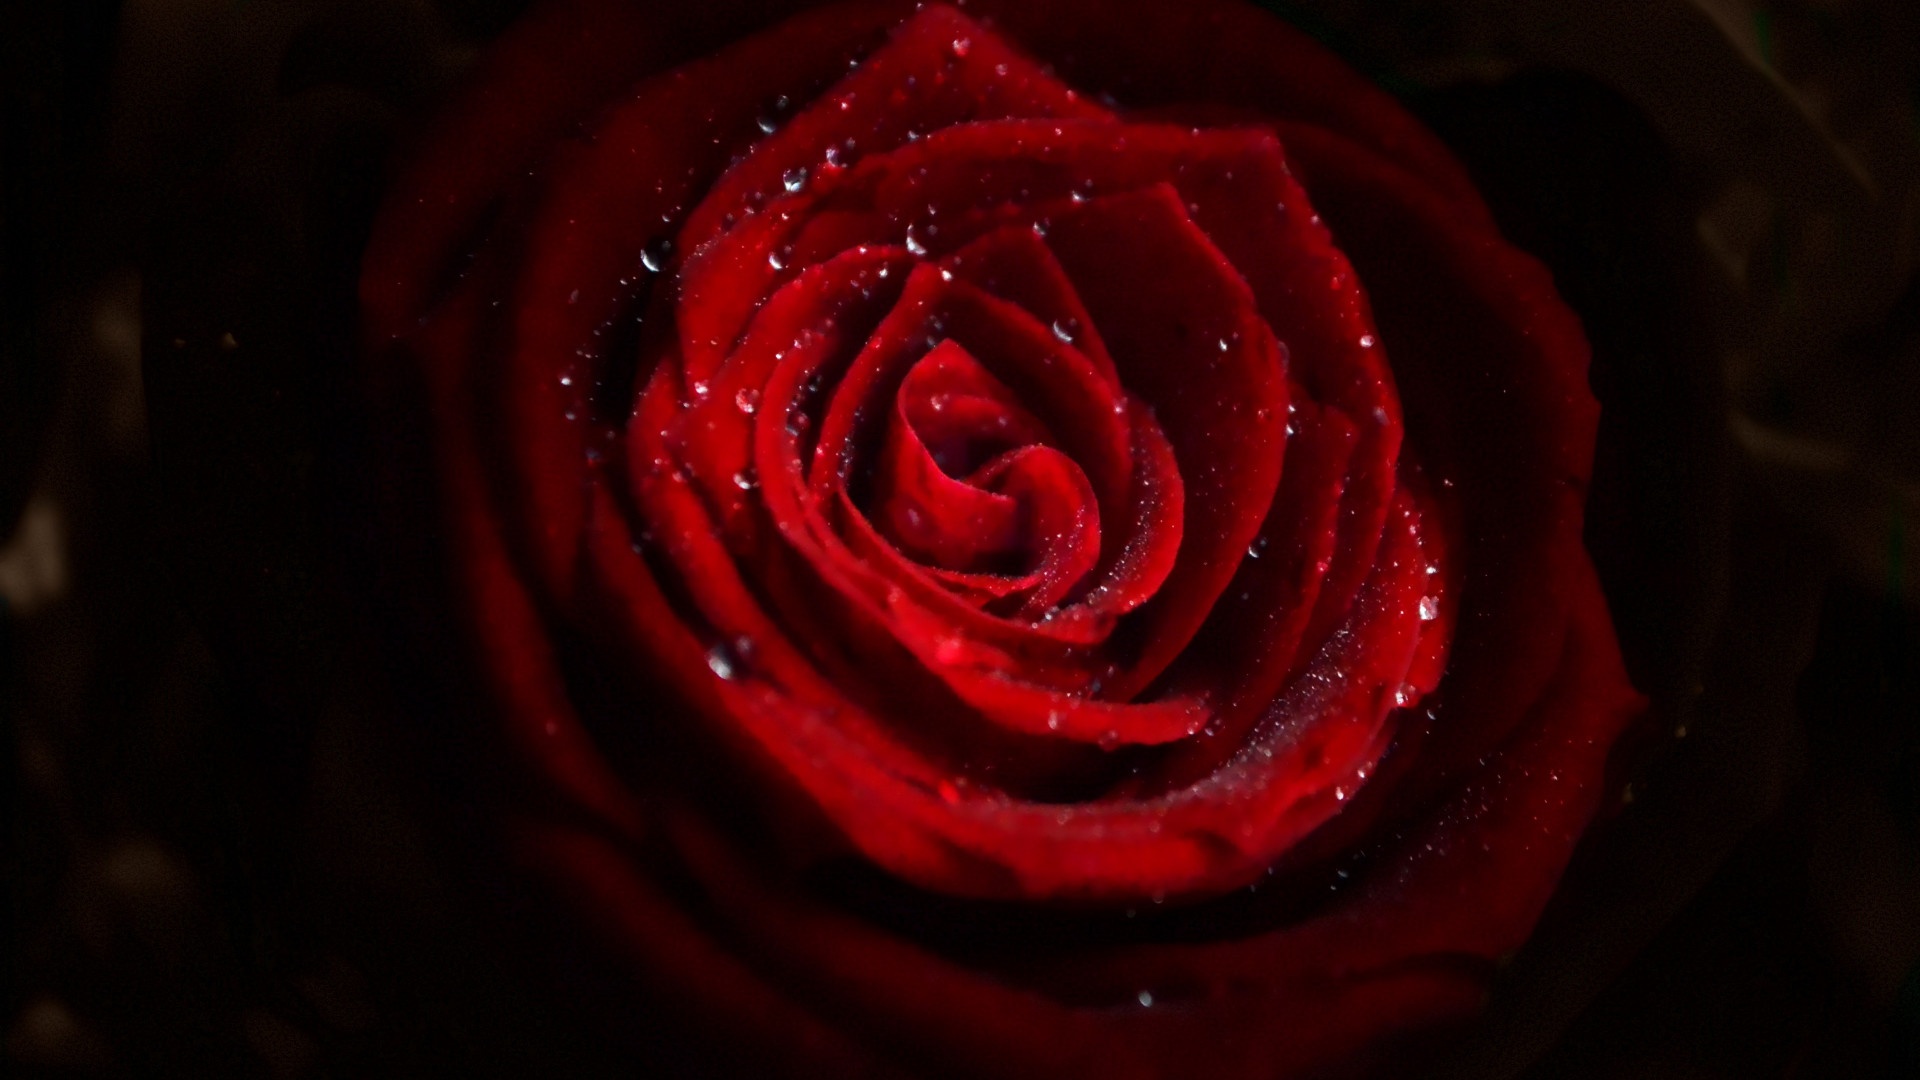 Water drops on red rose wallpaper 1920x1080